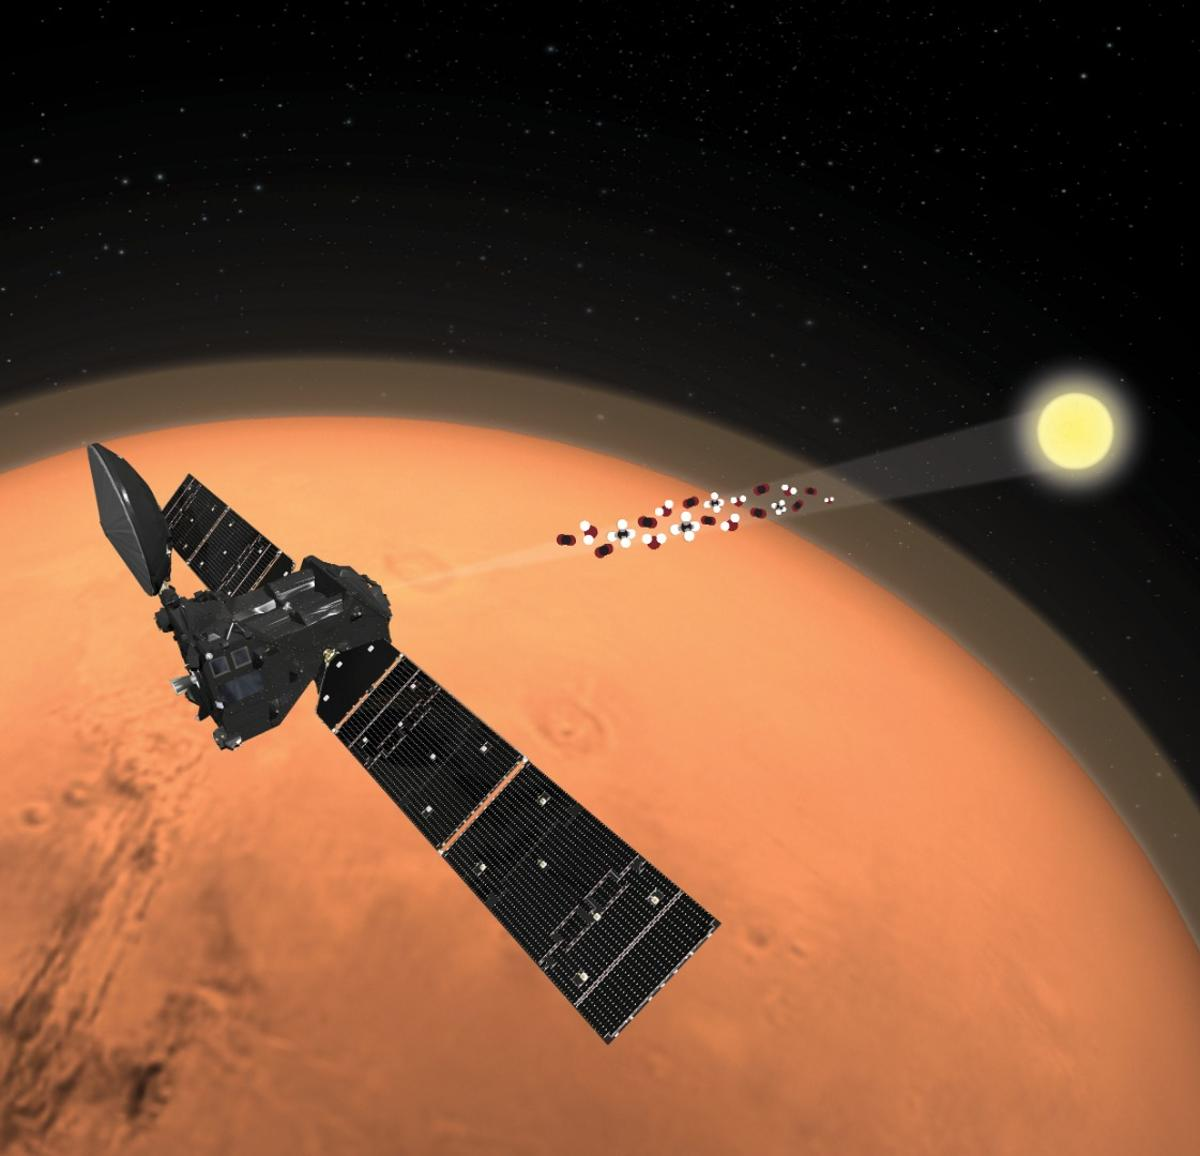 Anillustration of the ExoMars Trace Gas Orbiter analyzing the atmosphere of Mars